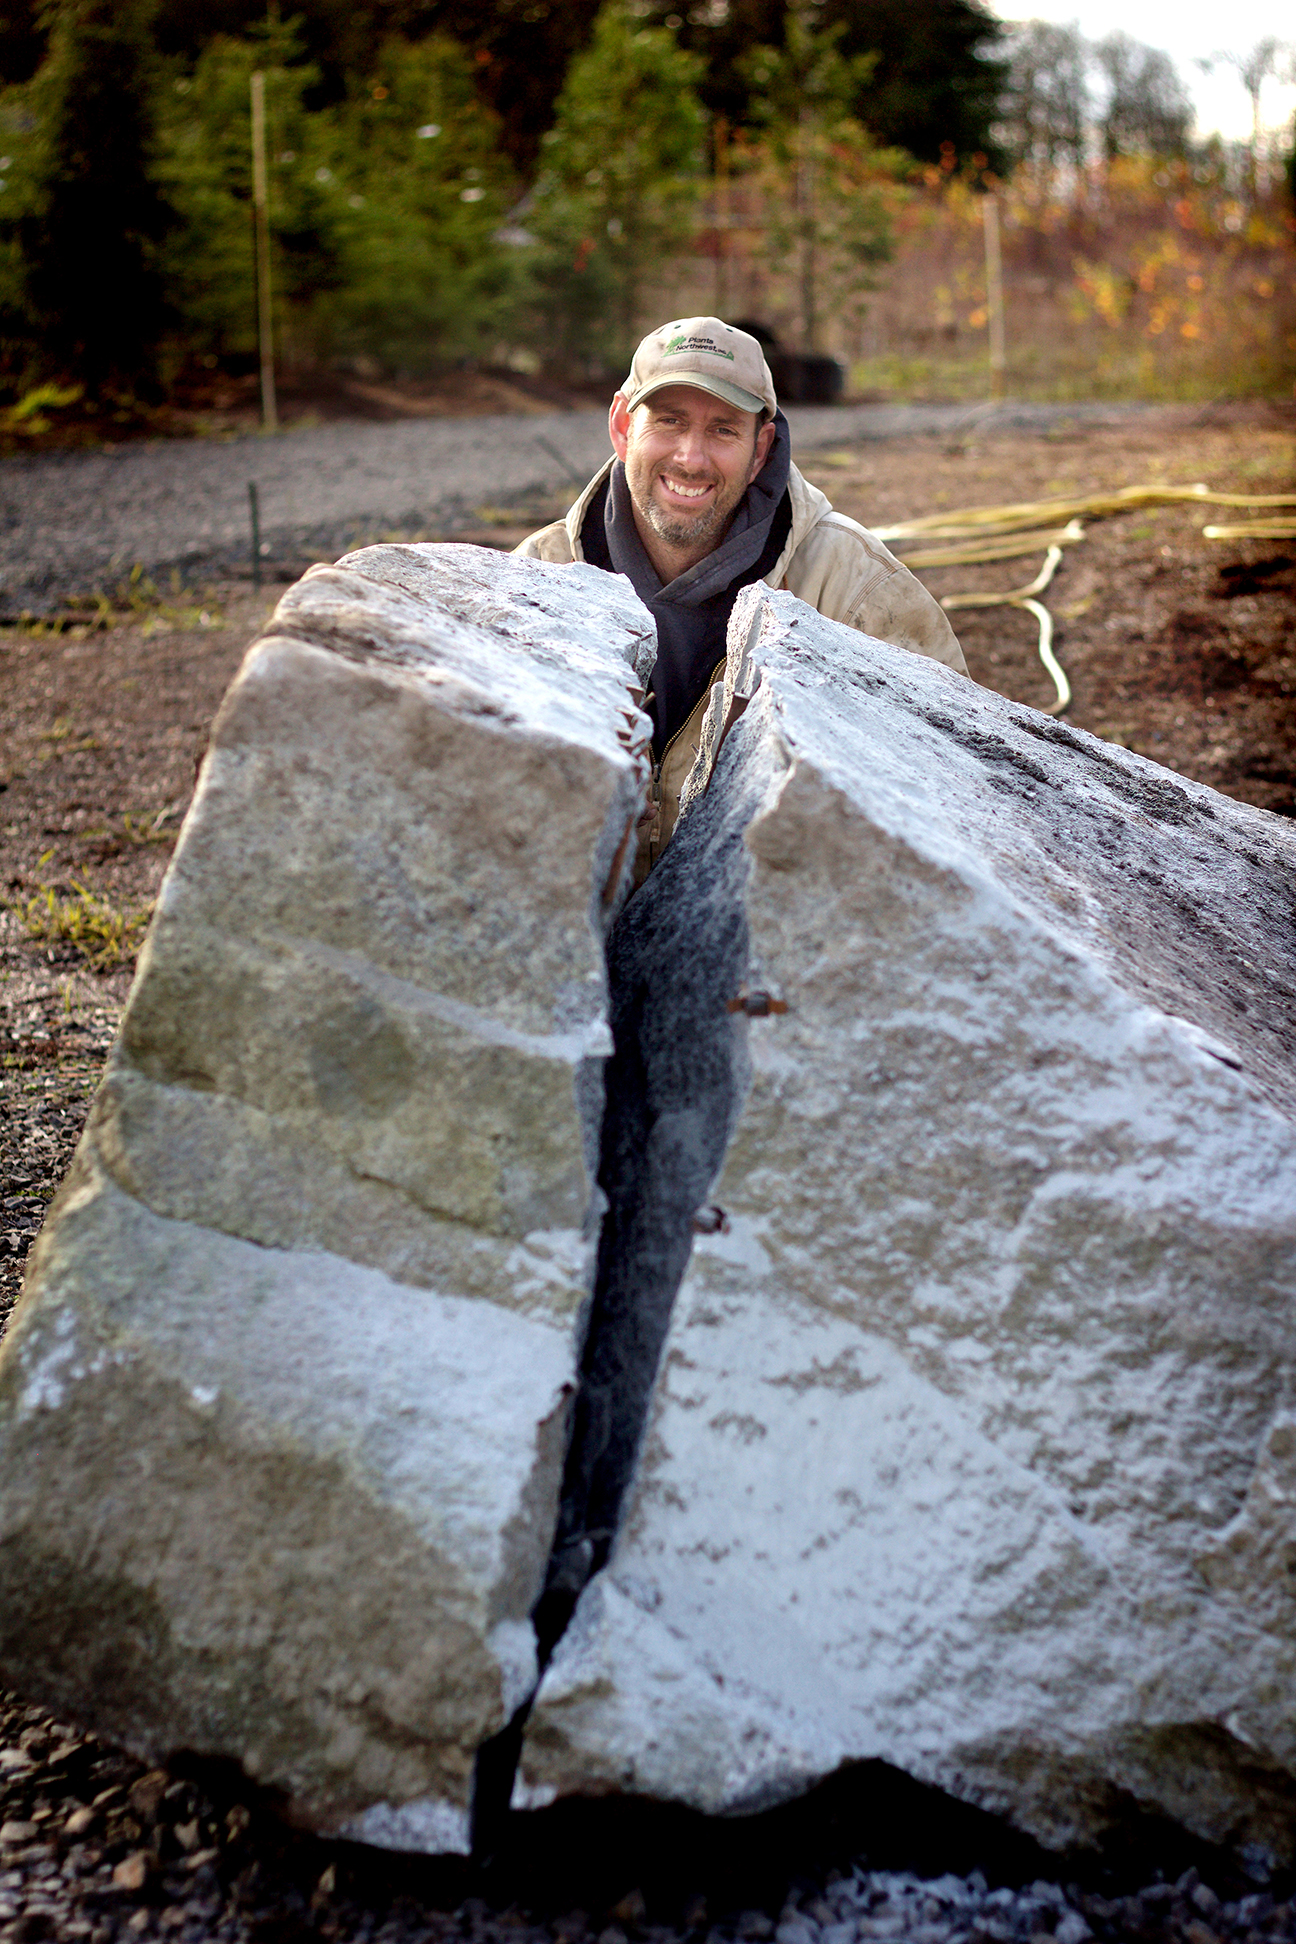 With a passion for rock - Paul has crafted beautiful natural focal points with large pieces of granite around our venue. His style is one that reflects the natural Northwest landscape.